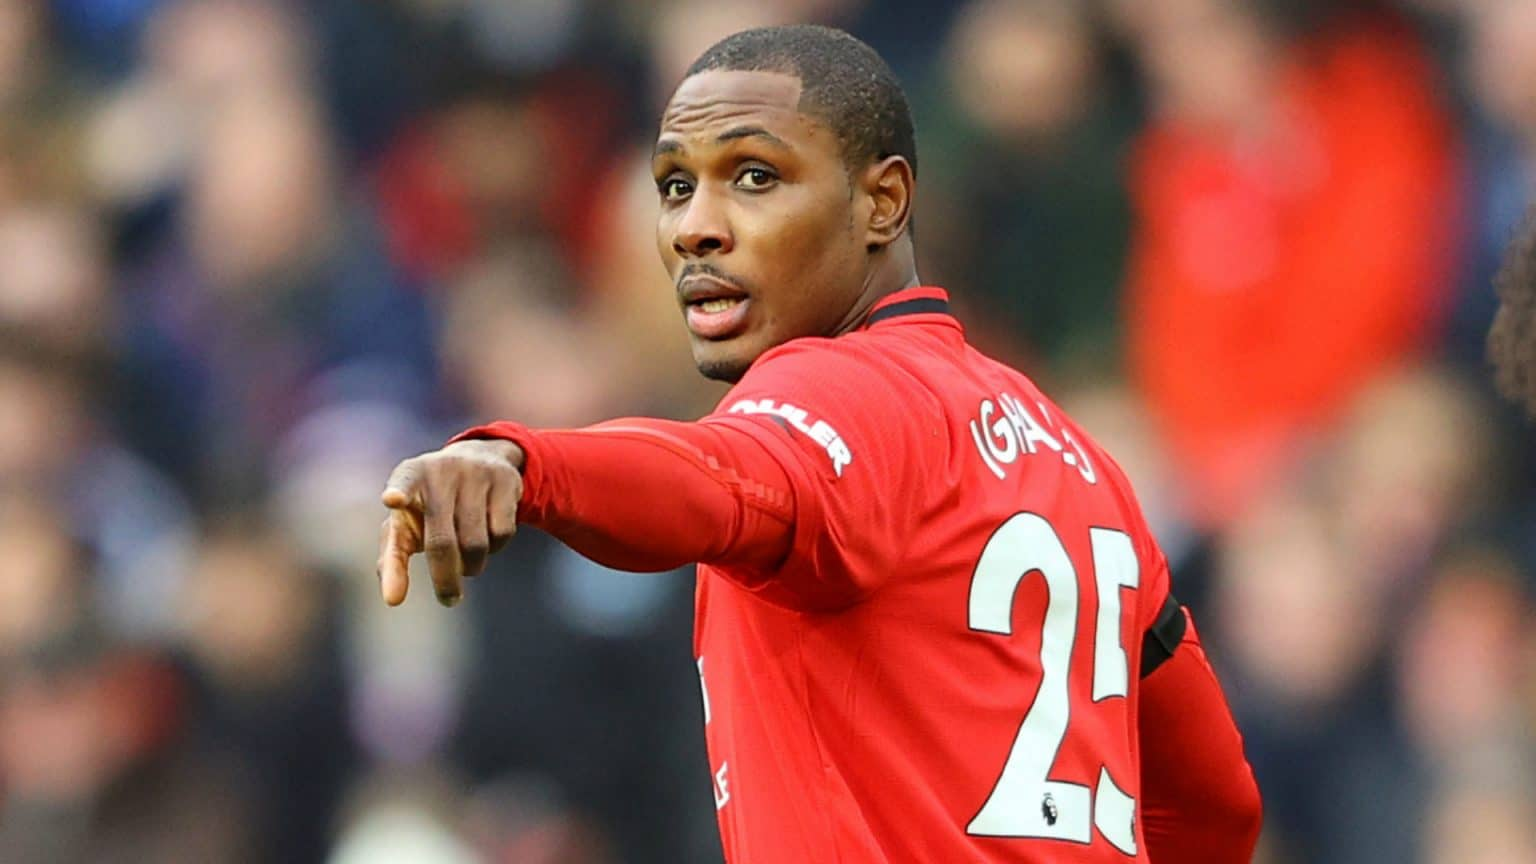 FA Cup: Ighalo included in Man Utd squad to face Watford